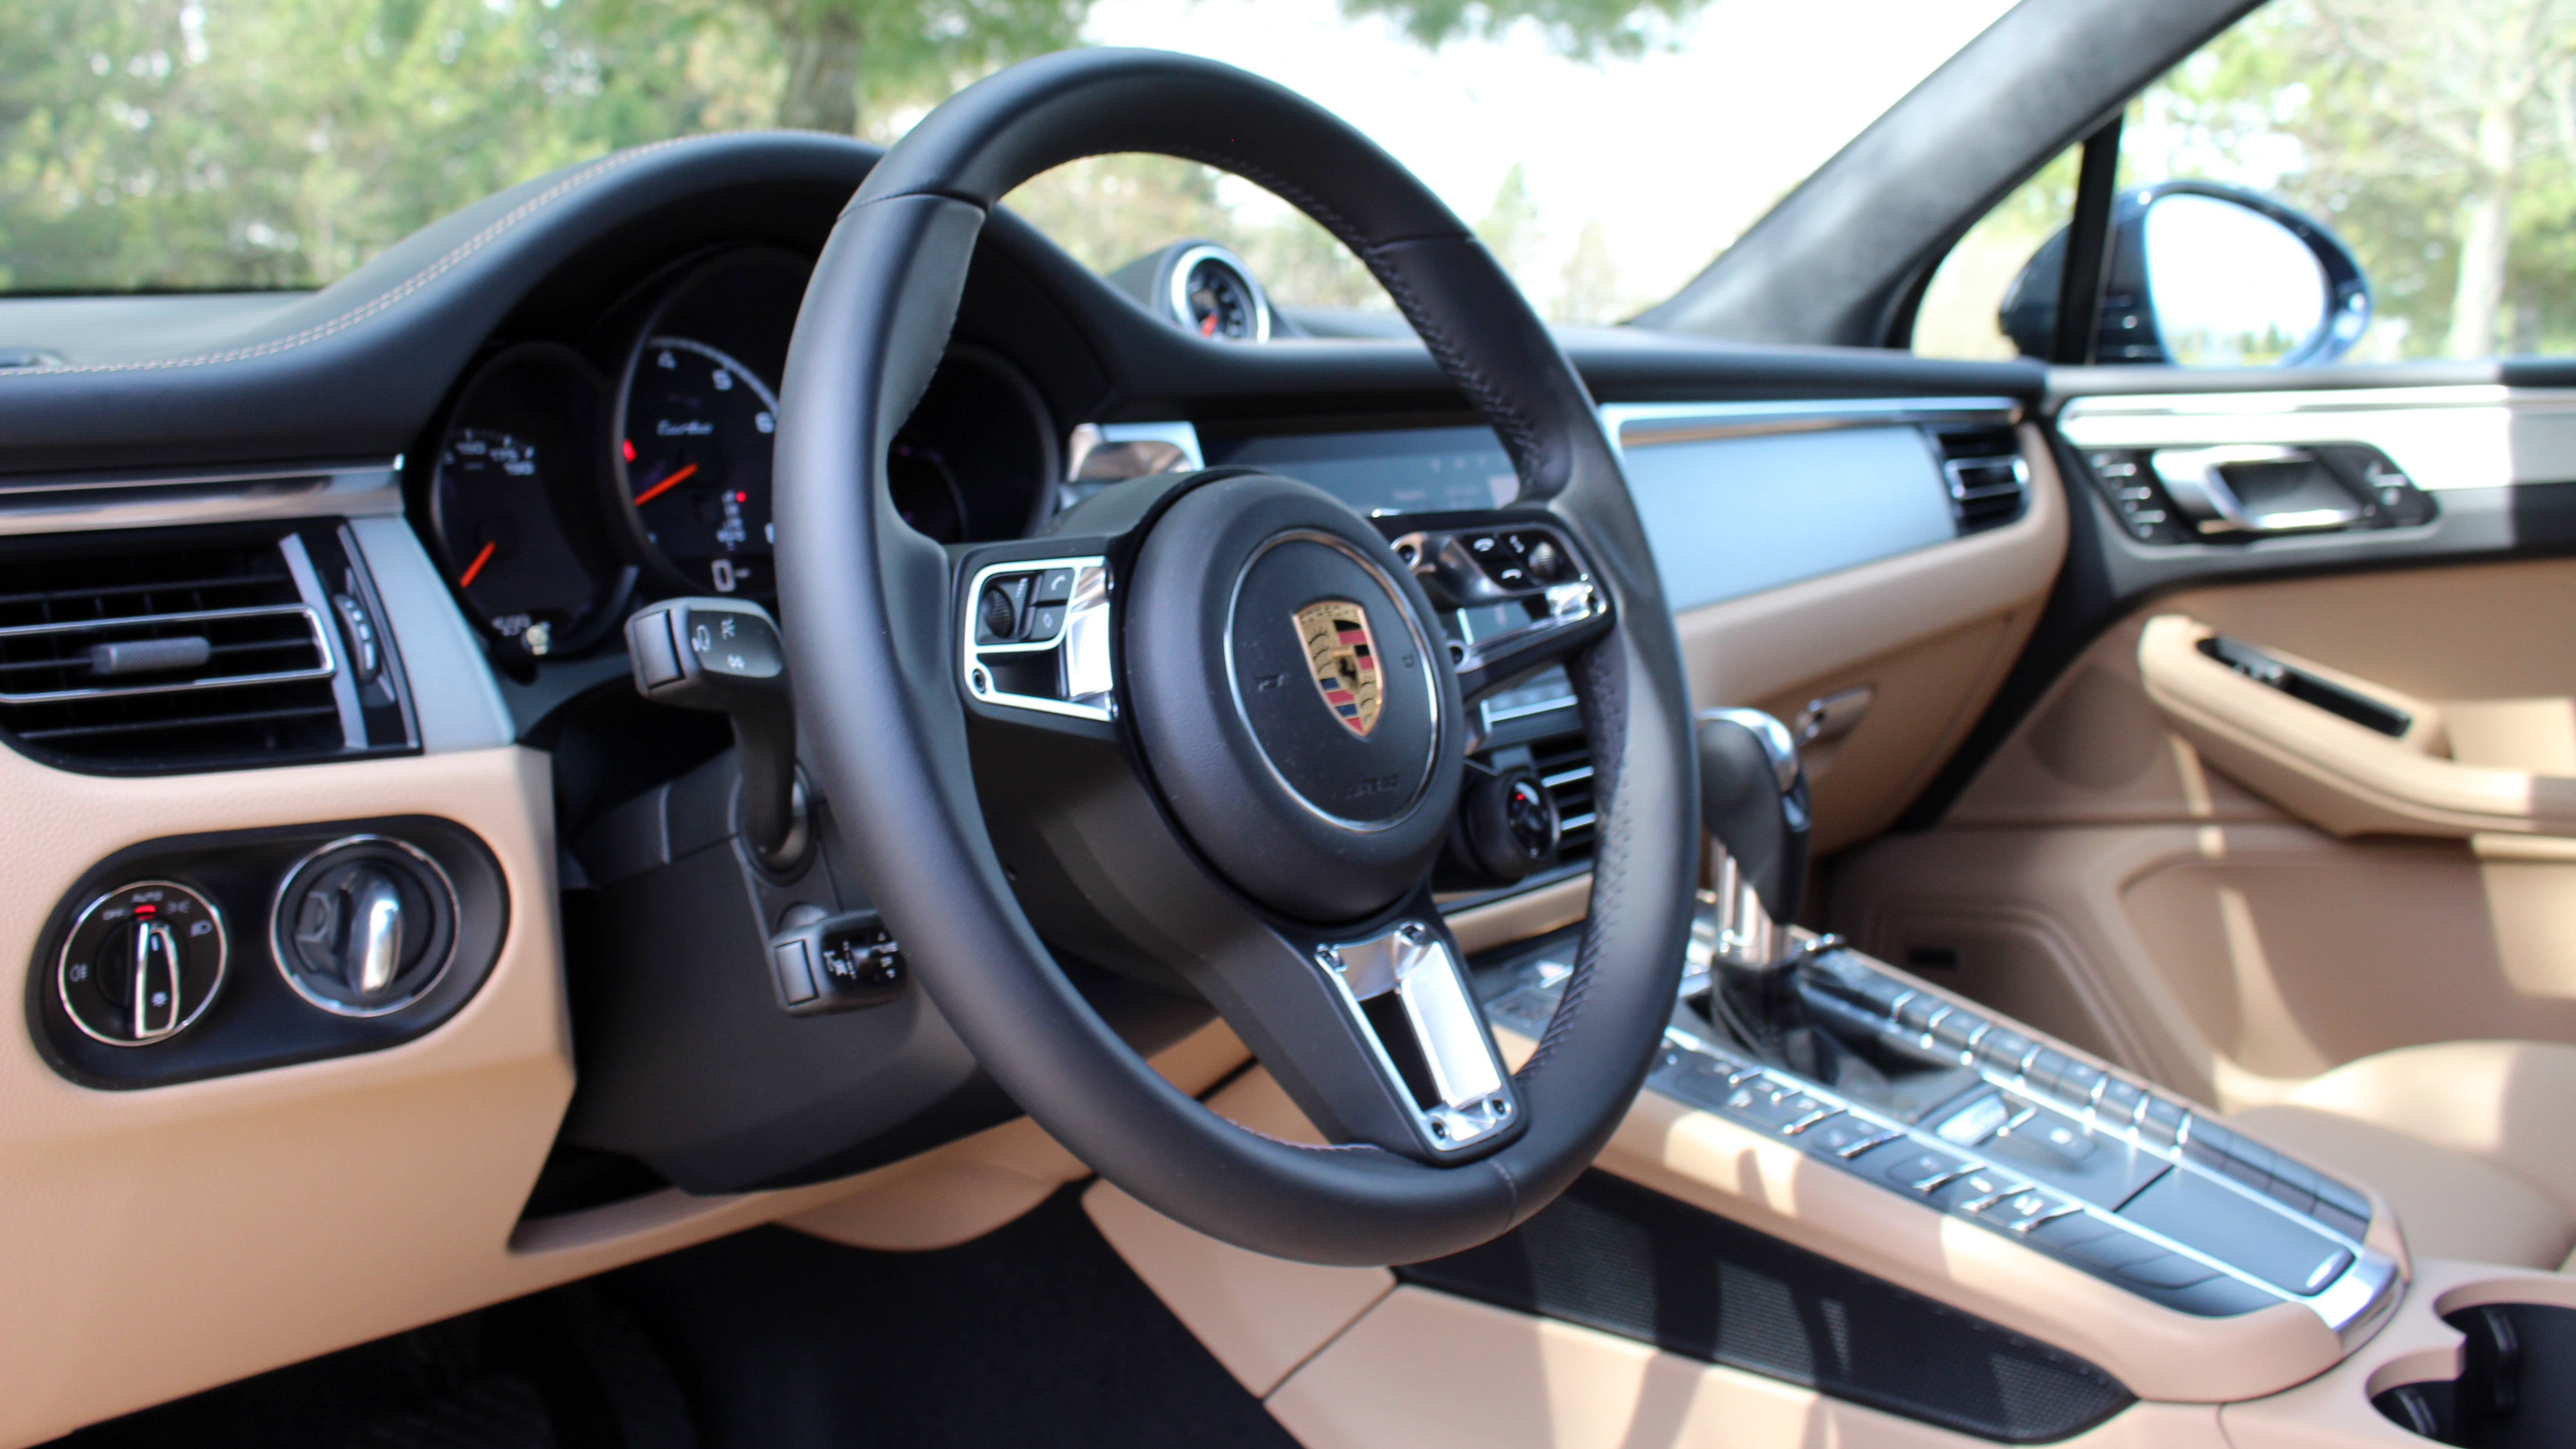 2020 Porsche Macan Turbo Interior Driveway Test Old And New School Autoblog